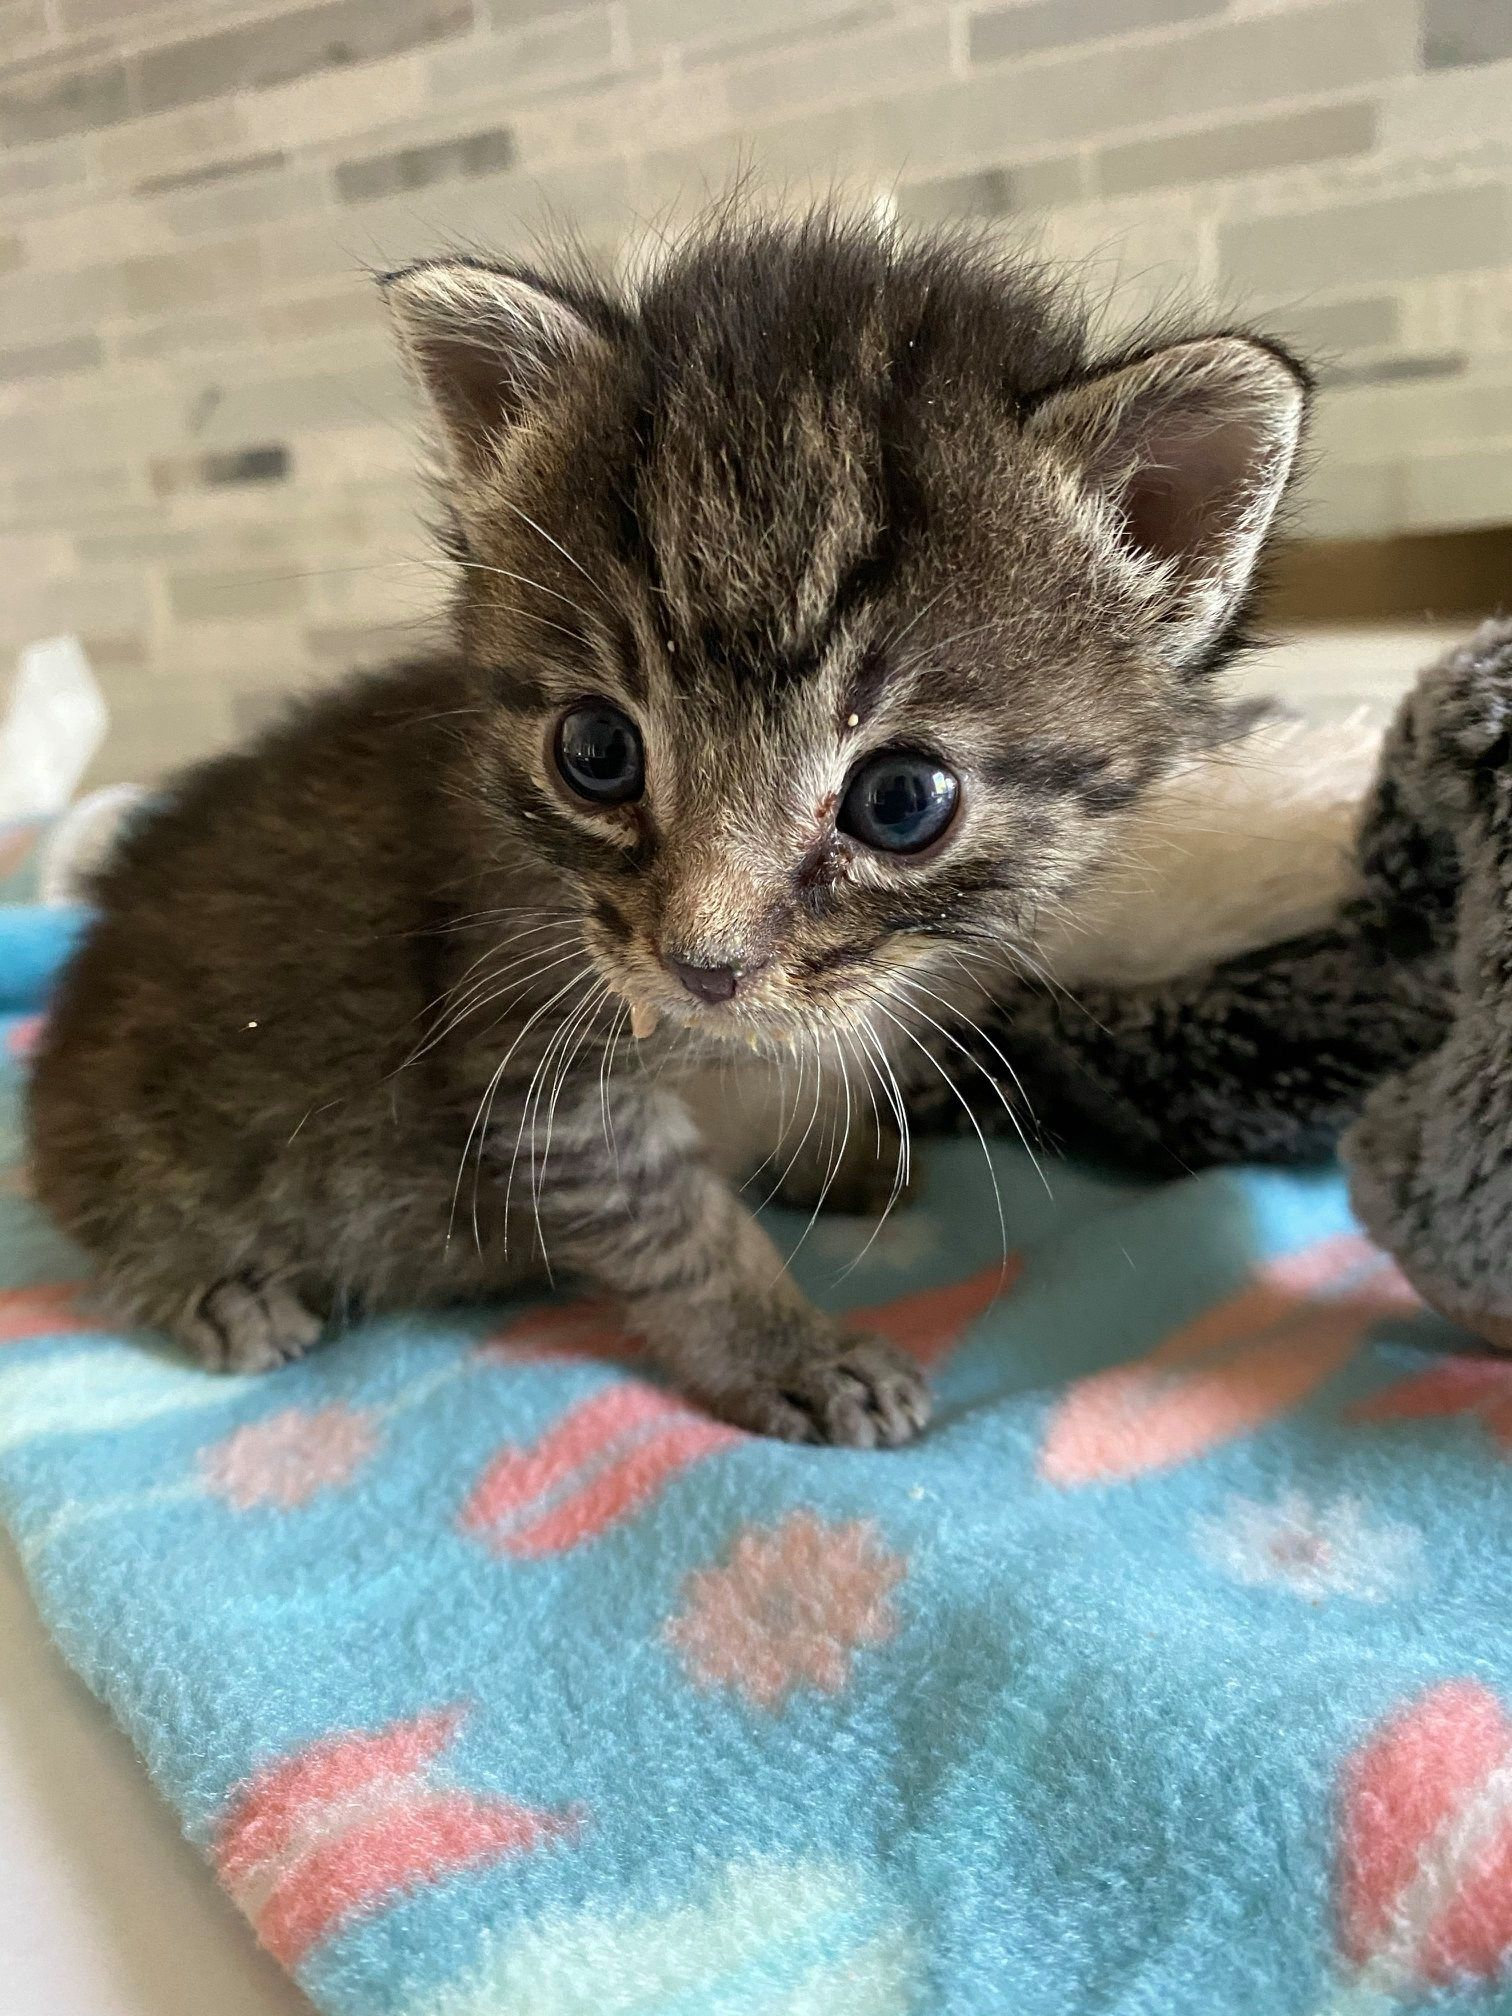 Supporting Needy Kittens In 2020 Kittens Newborn Kittens Kitten